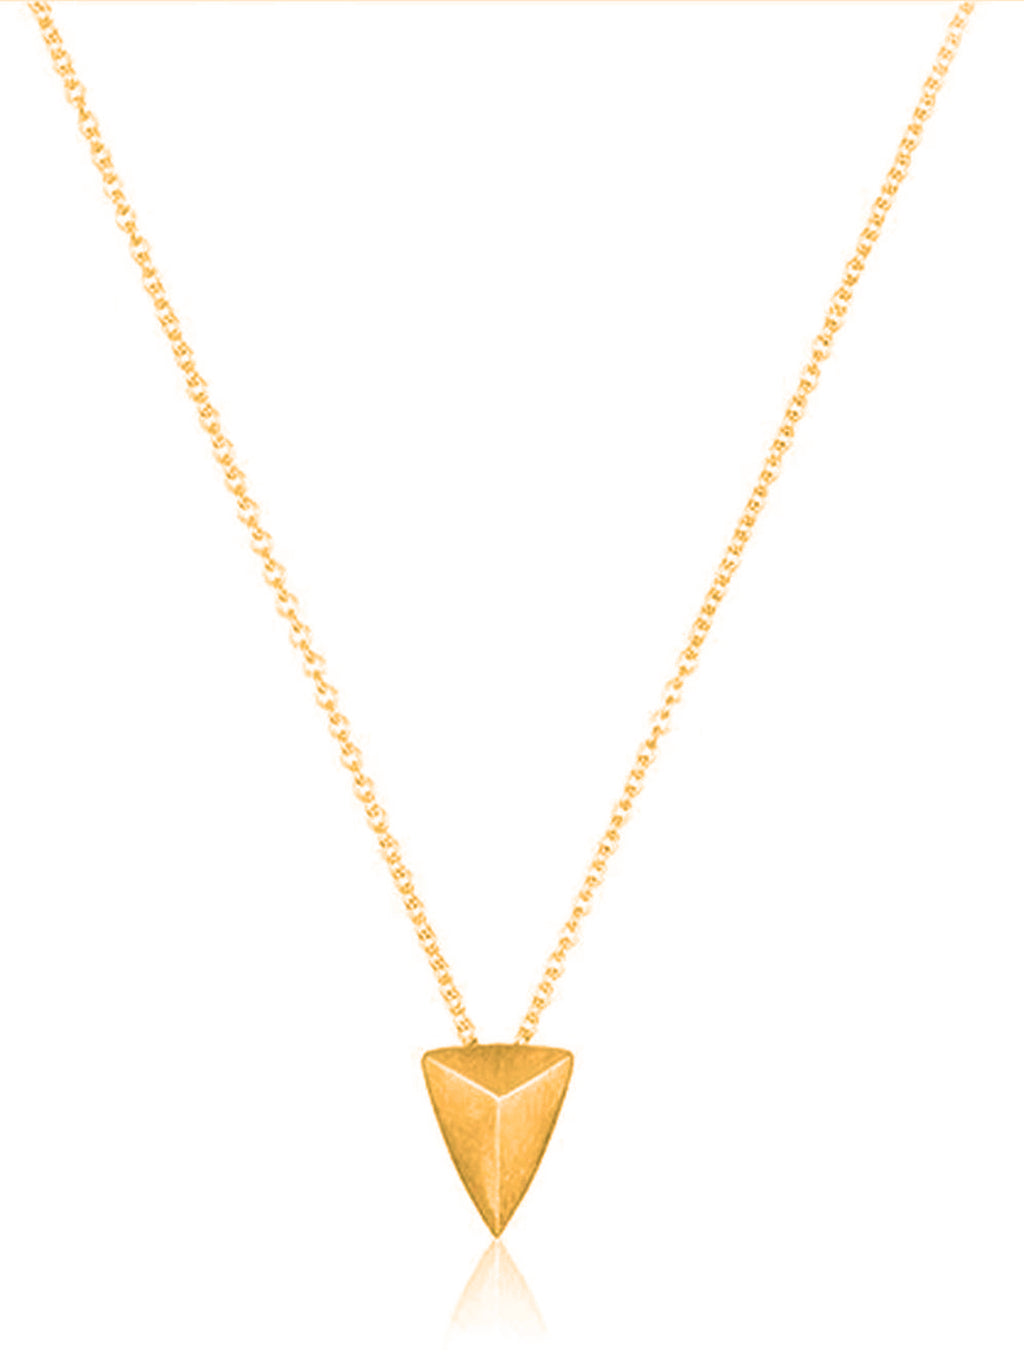 You Are Mighty Inspirational Gold Tone Necklace